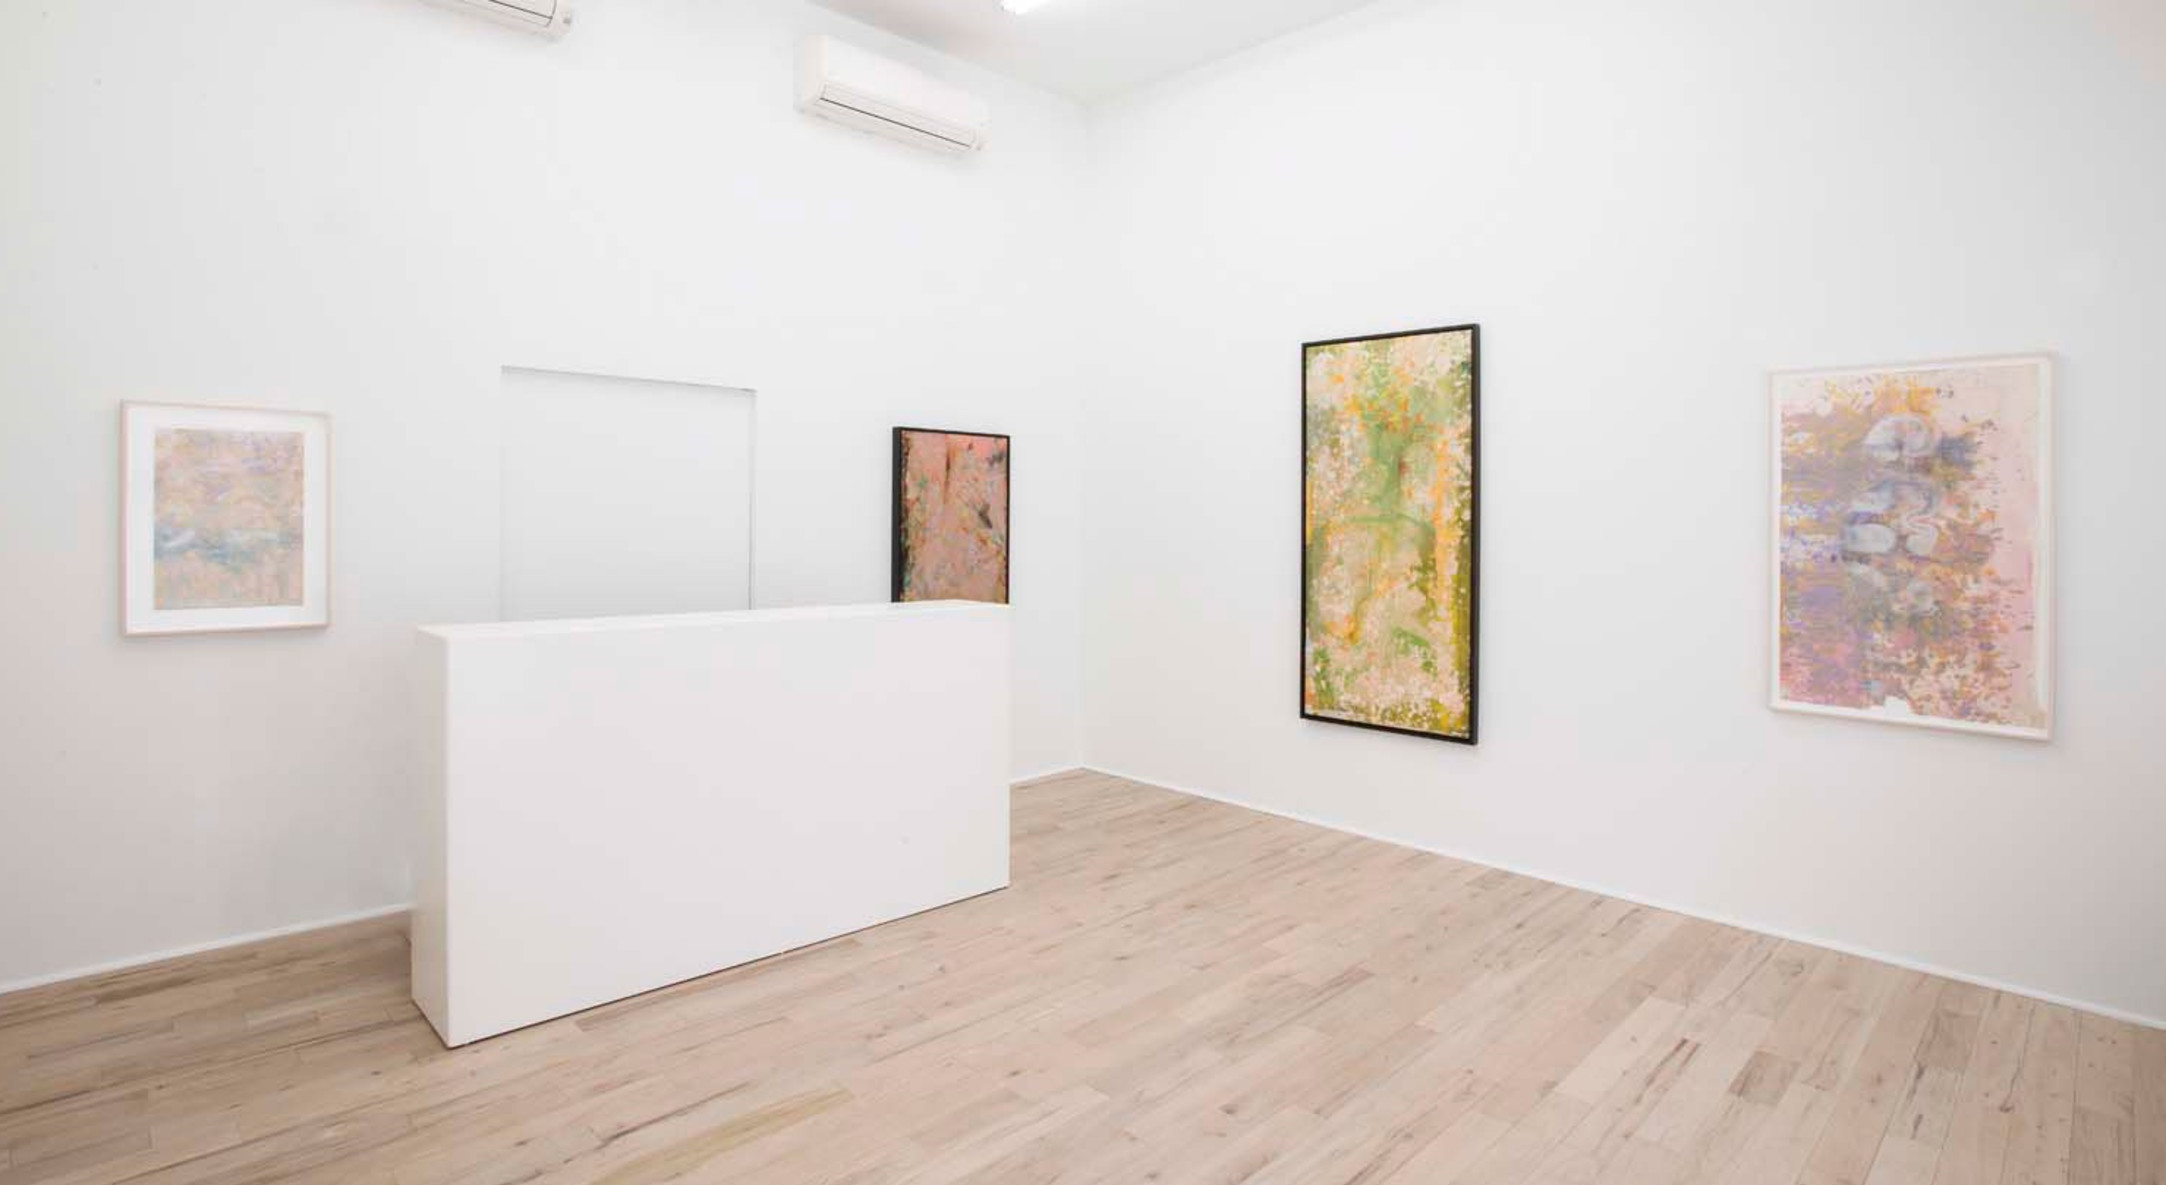 Installation view of Frank Bowling, Metropolitanblooms at Hales Project Room, New York, 2017